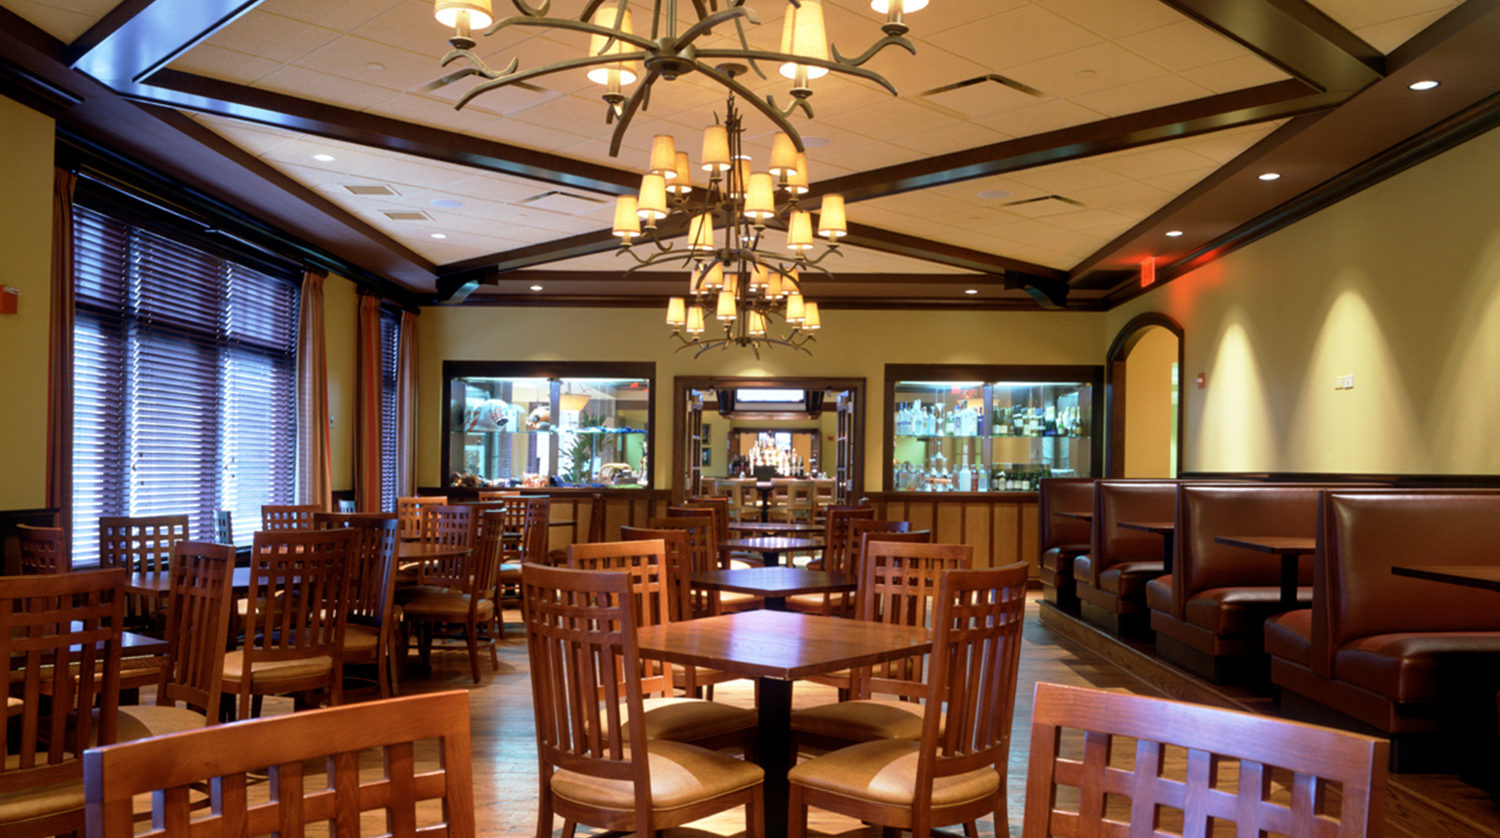 Wheaton Park District Arrowhead Golf Clubhouse dining room 2